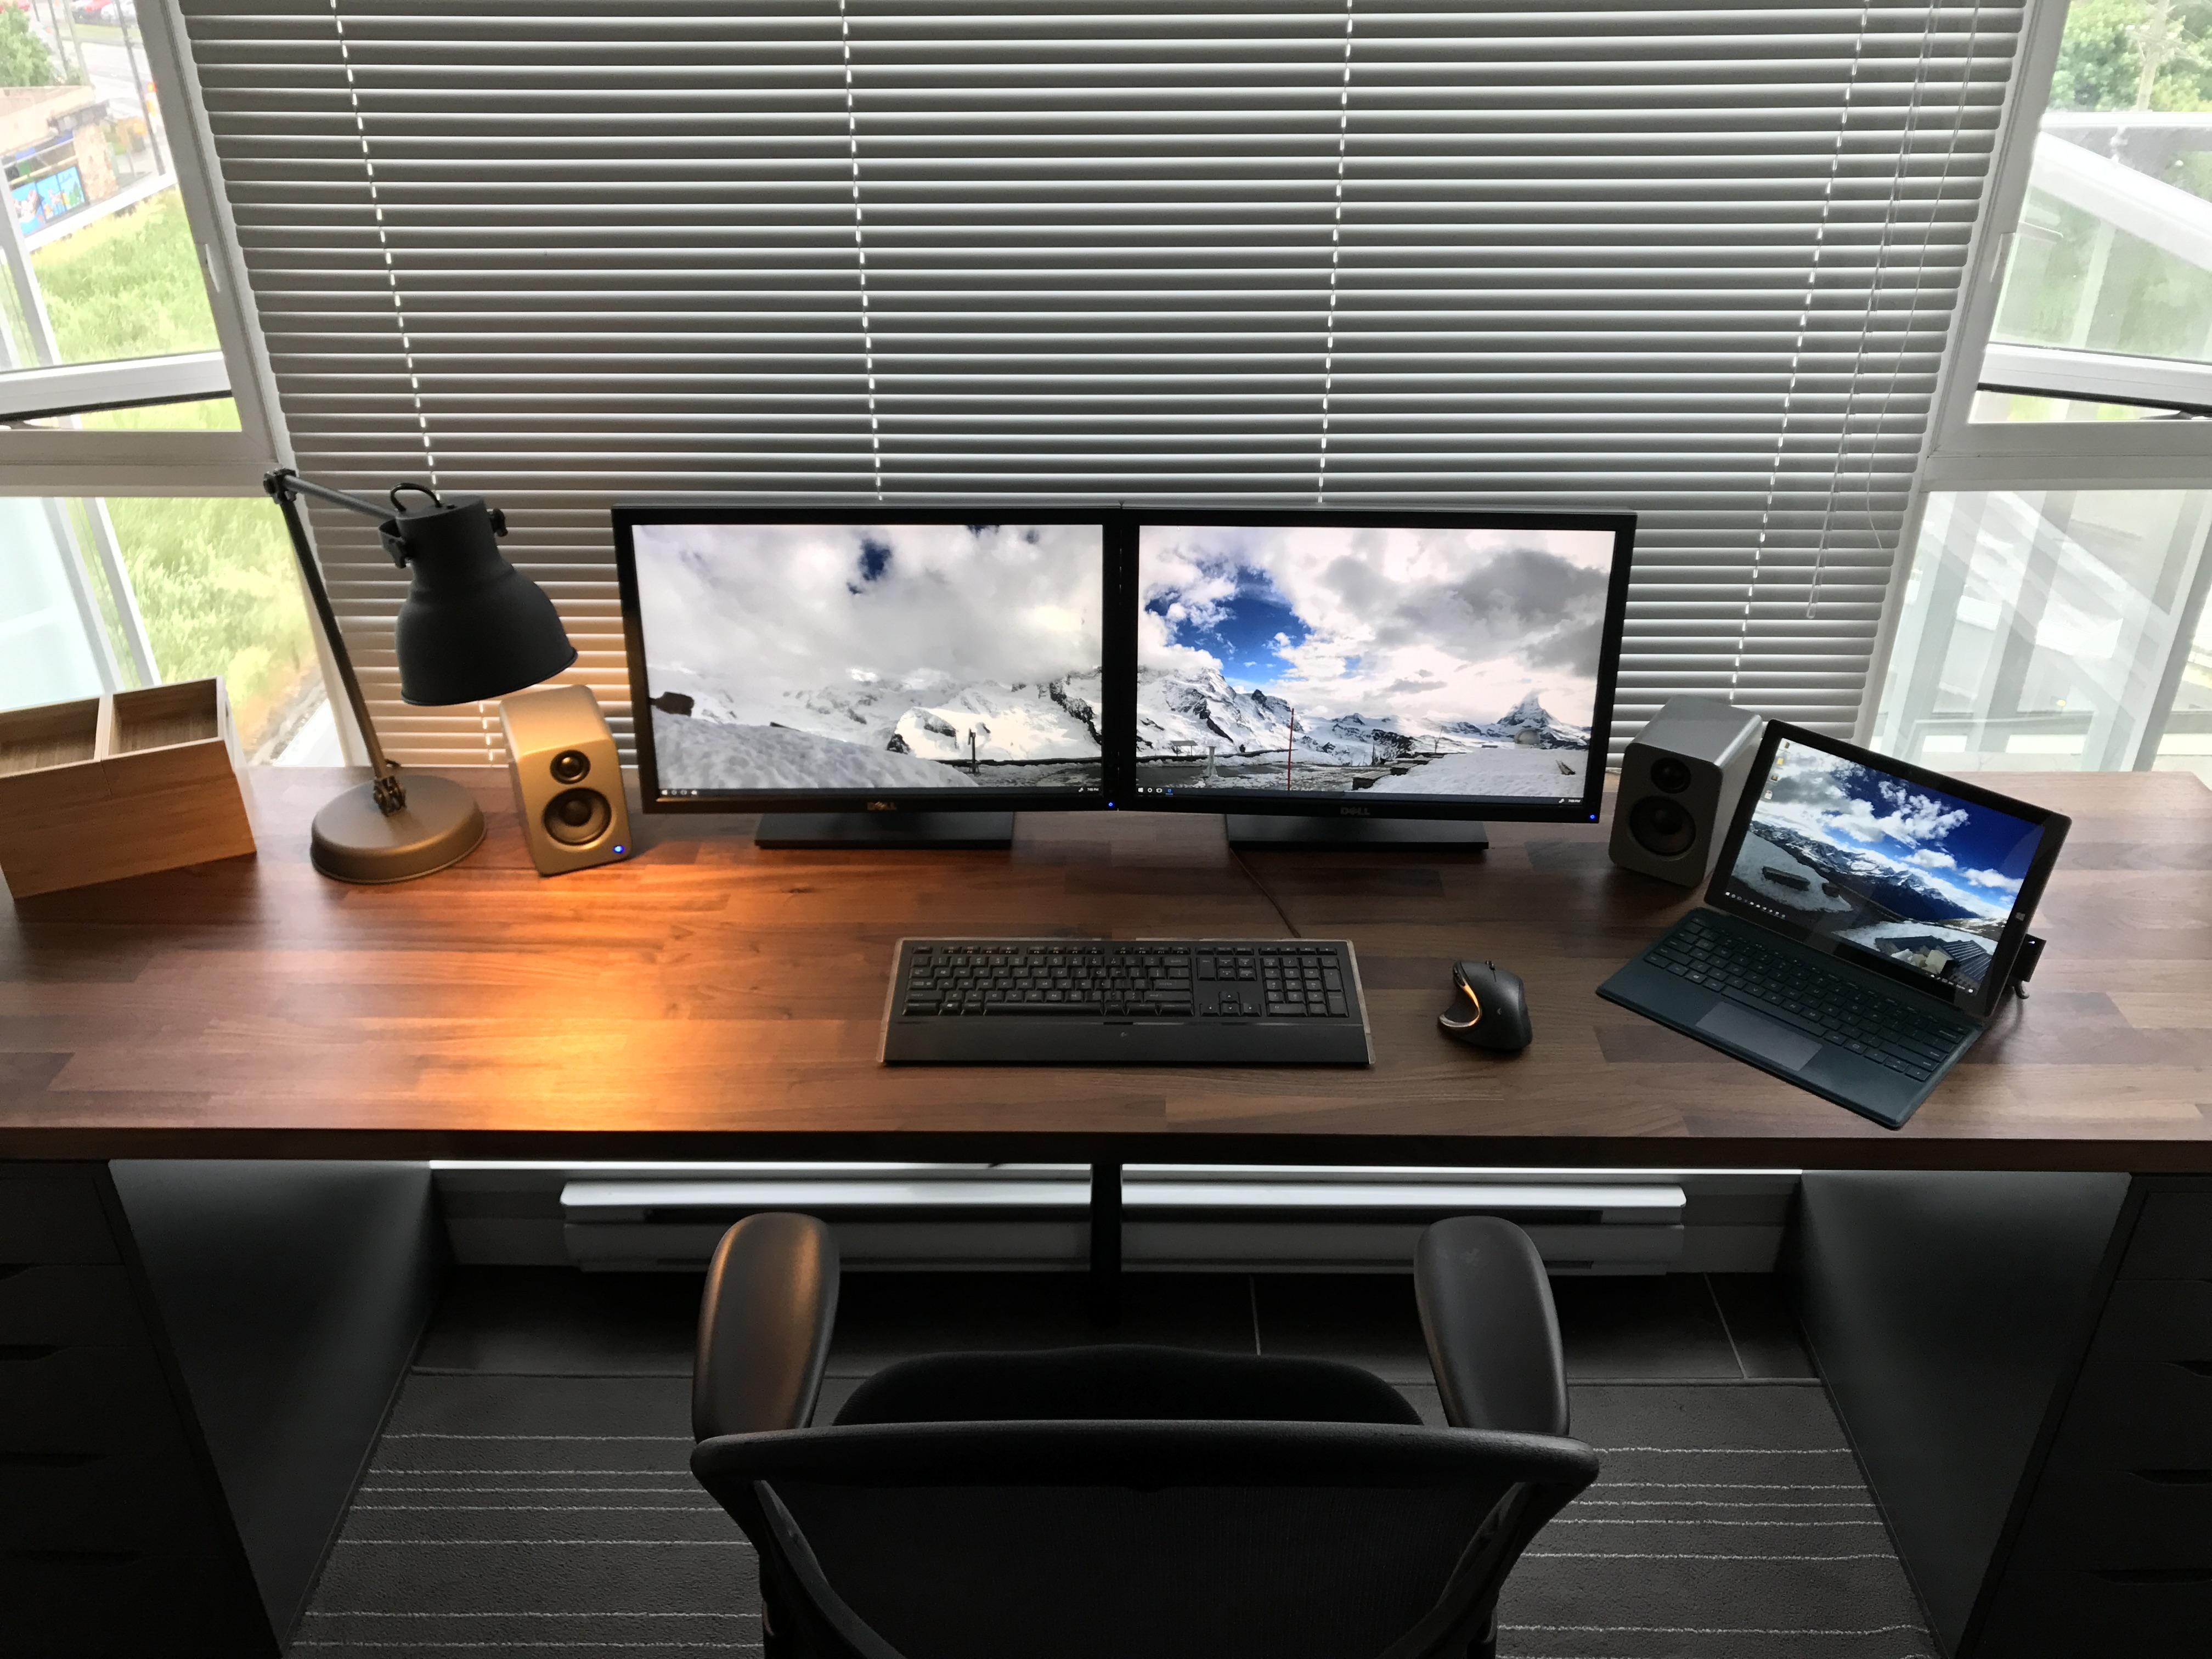 Distinctive My Been Waiting A Long Time Been Waiting A Long Time My Battle Ikea Deska Karlby Ikea Karlby Desk Reddit houzz 01 Ikea Karlby Desk